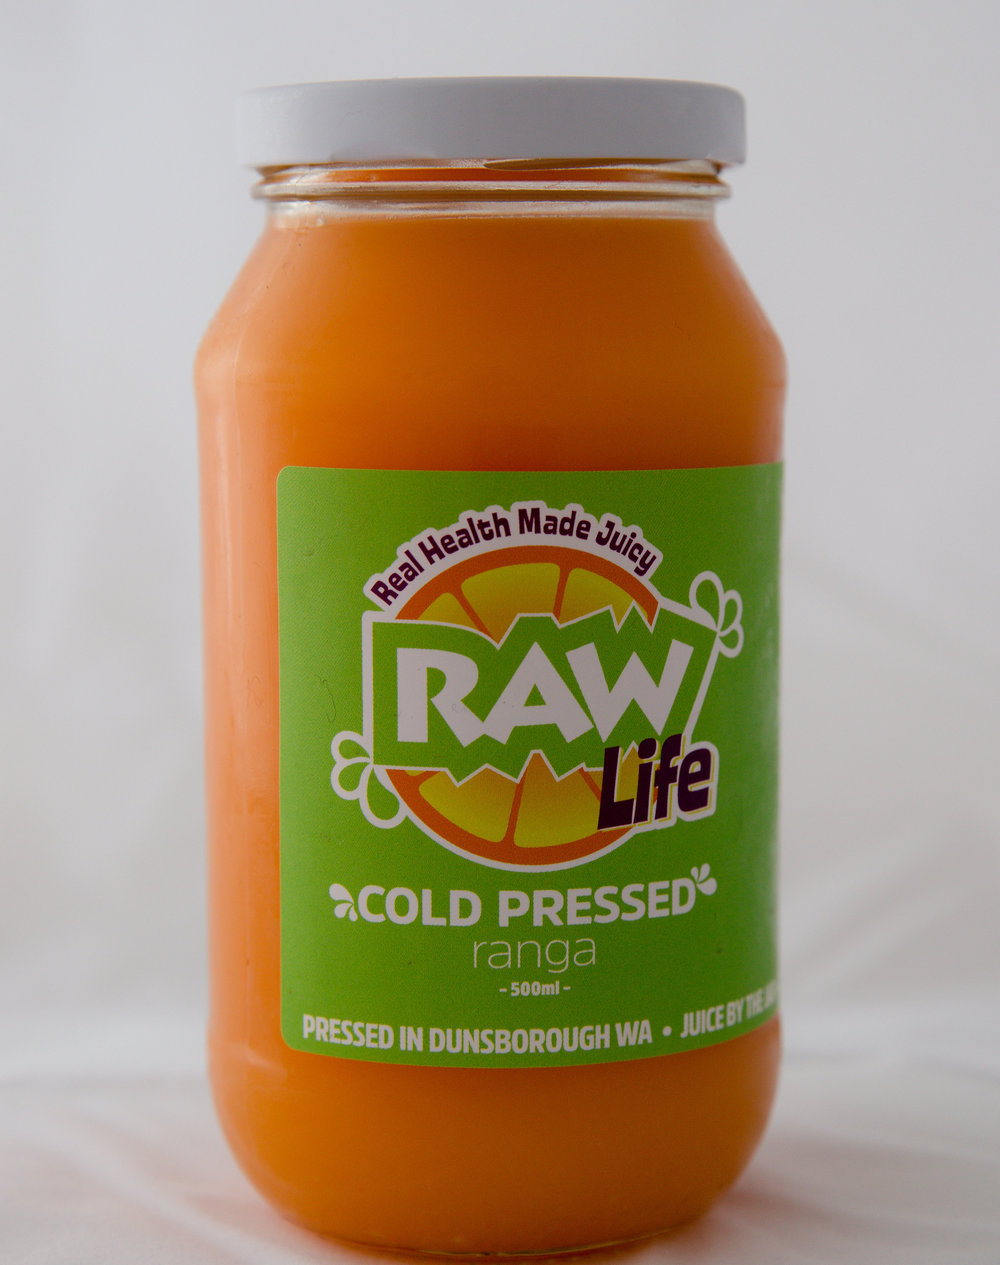 A vitamin C boost to give you some spring, with lemon and ginger to add in some zing. - Carrot, orange, lemon and ginger